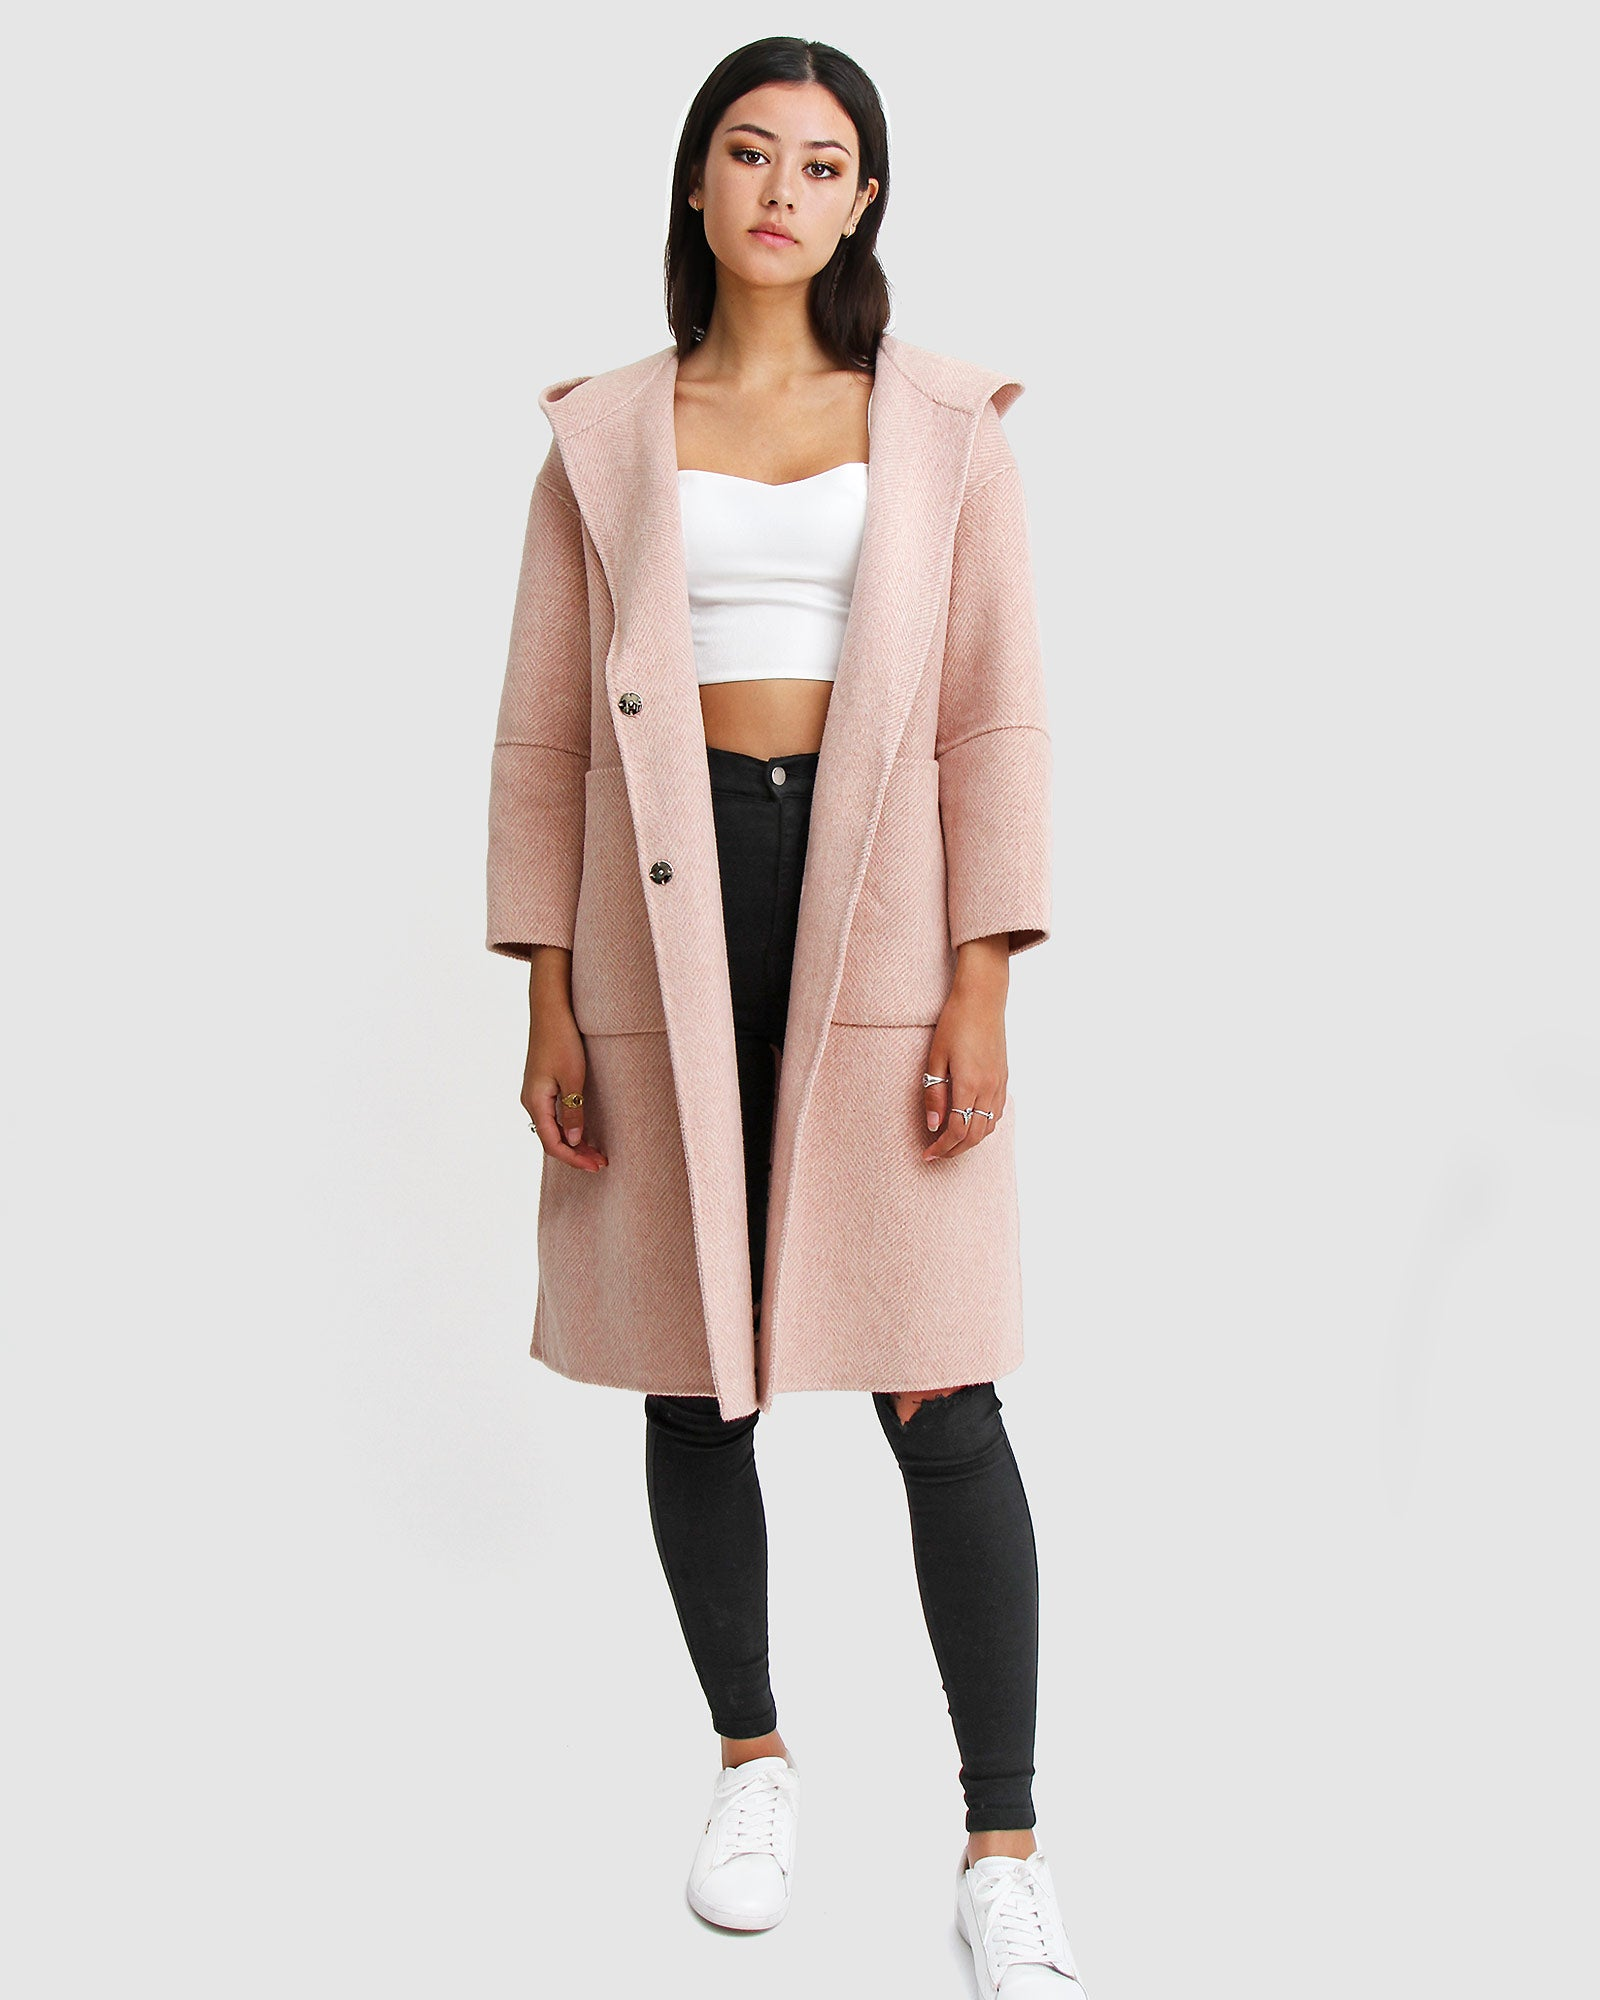 walk%20this%20way-oversized-coat-blush-model-front.jpg